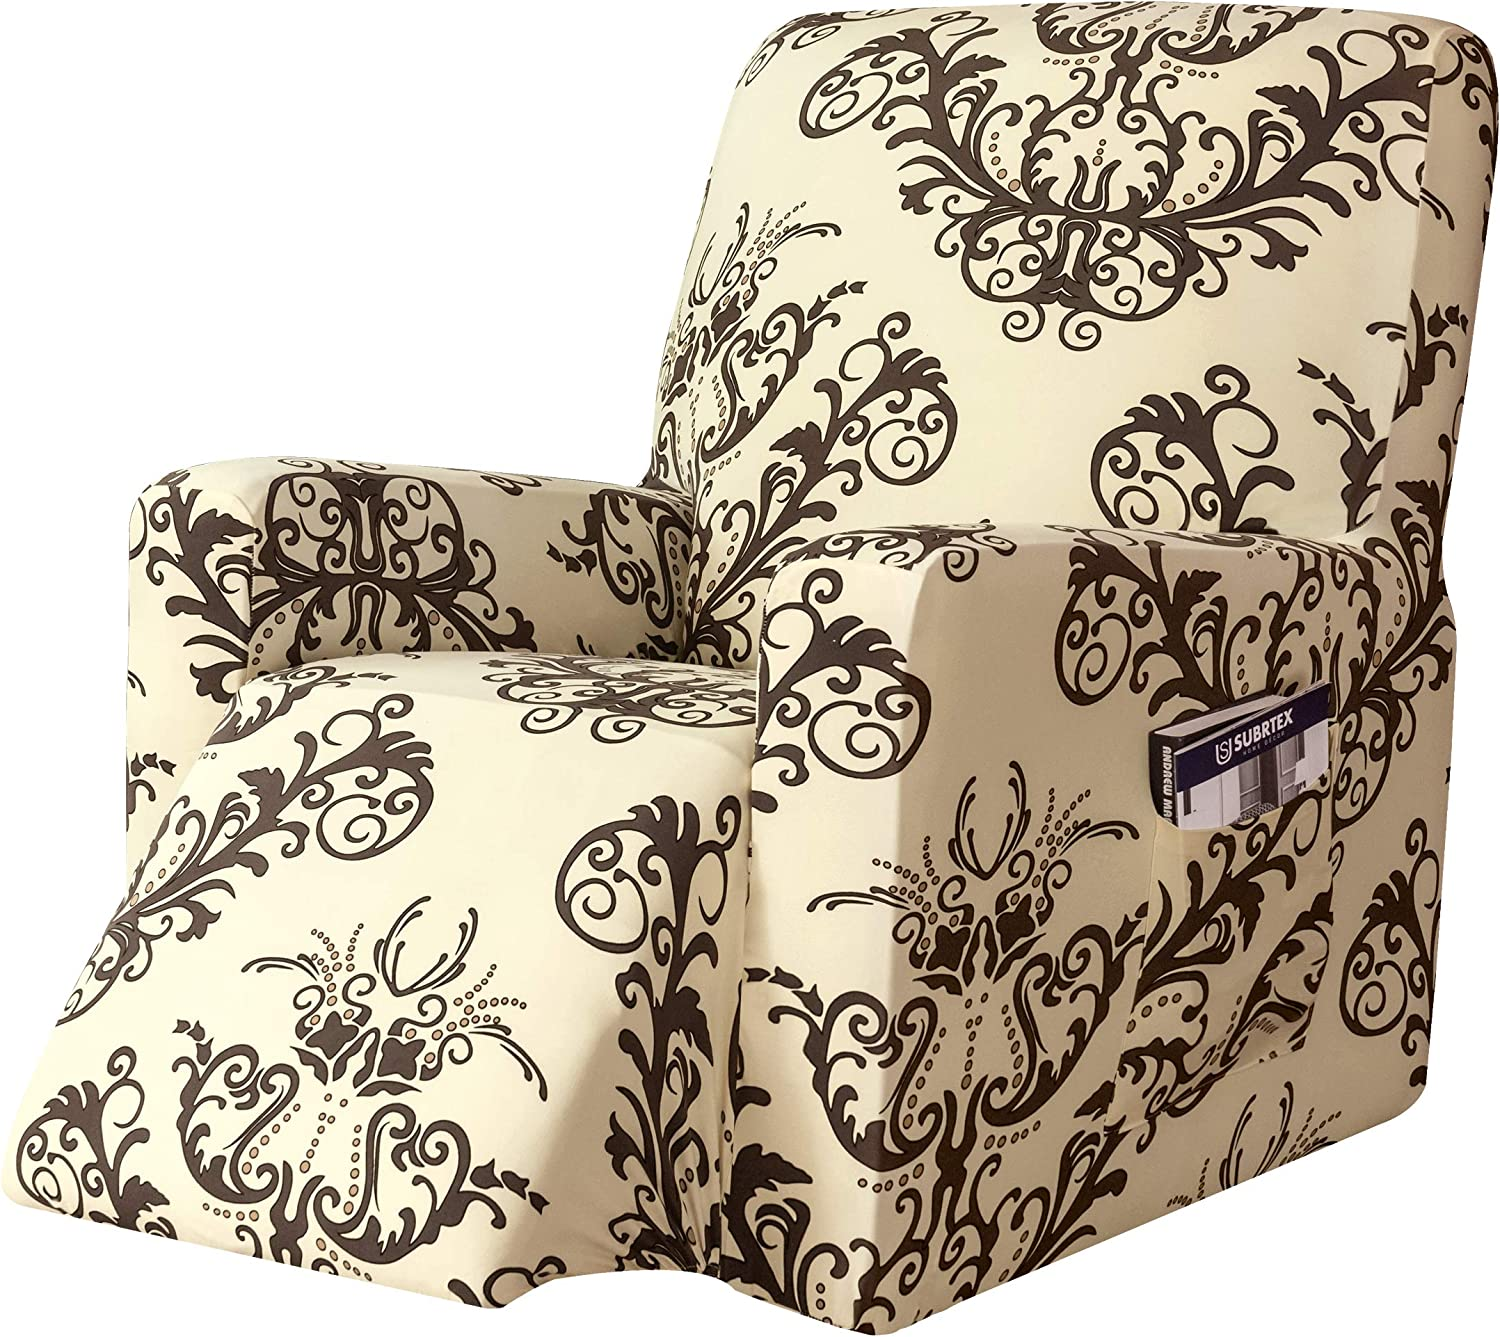 subrtex Printed Recliner Chair Slipcover Stretch Lazy Boy Covers for Leather Furniture Protector Rocker Sofa Cover with Side Pocket (Coffee)